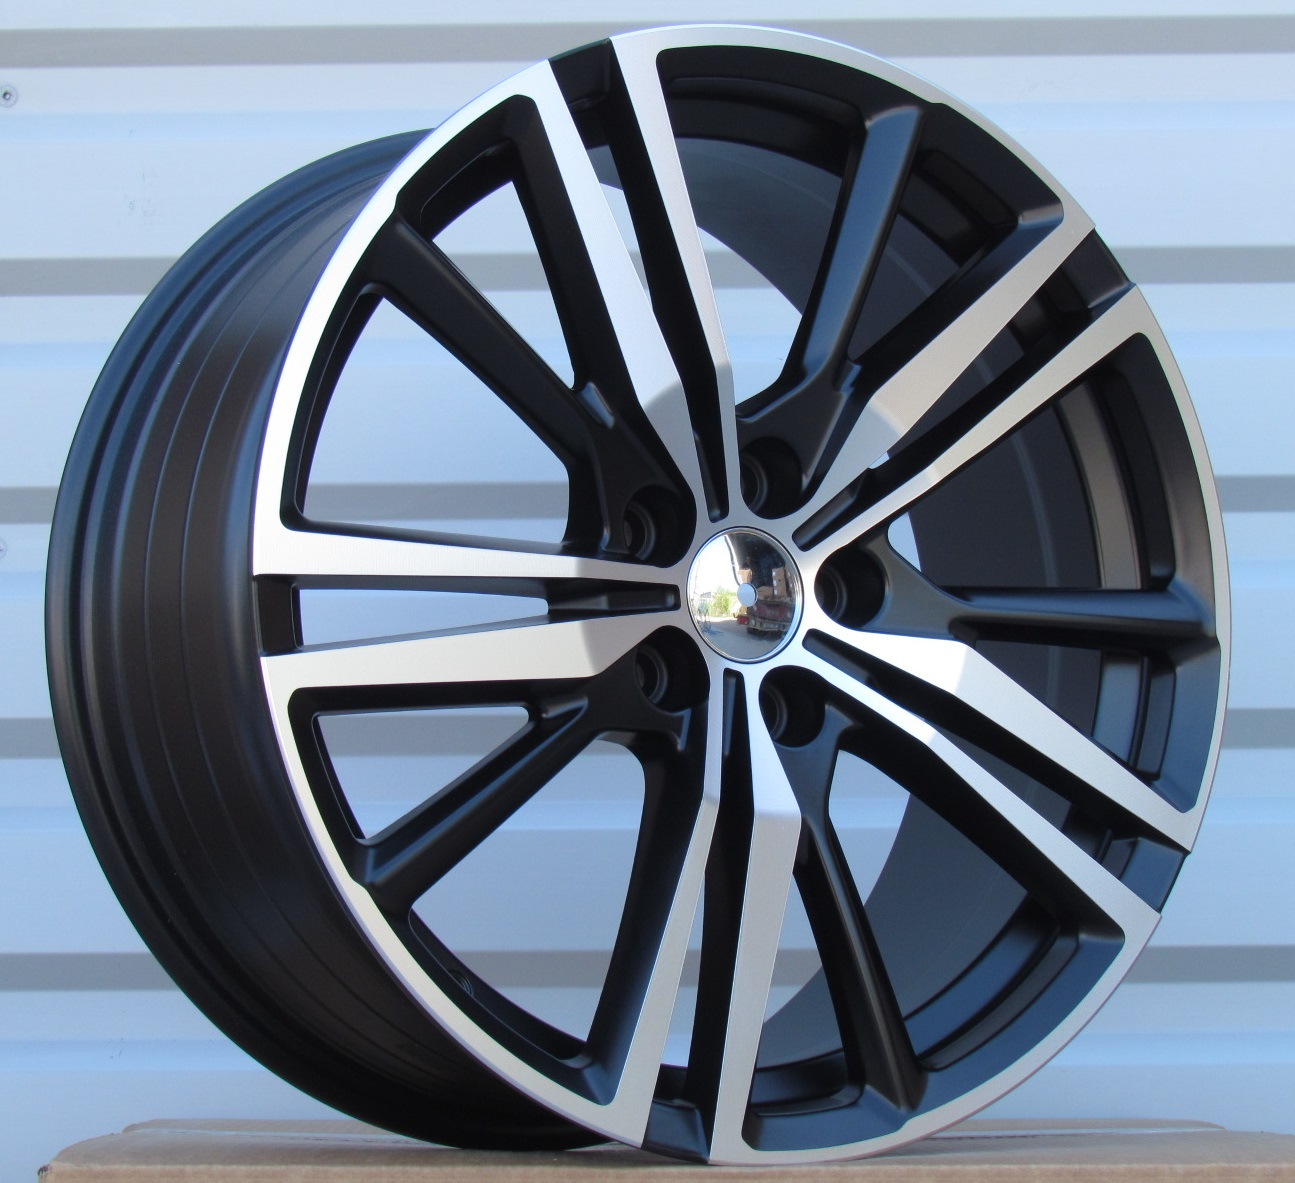 V18X8 5X108 ET45 63.3 FE182 MB+POWDER COATING RWR VOL (+3eur) (K6) 8x18 ET47 5x108